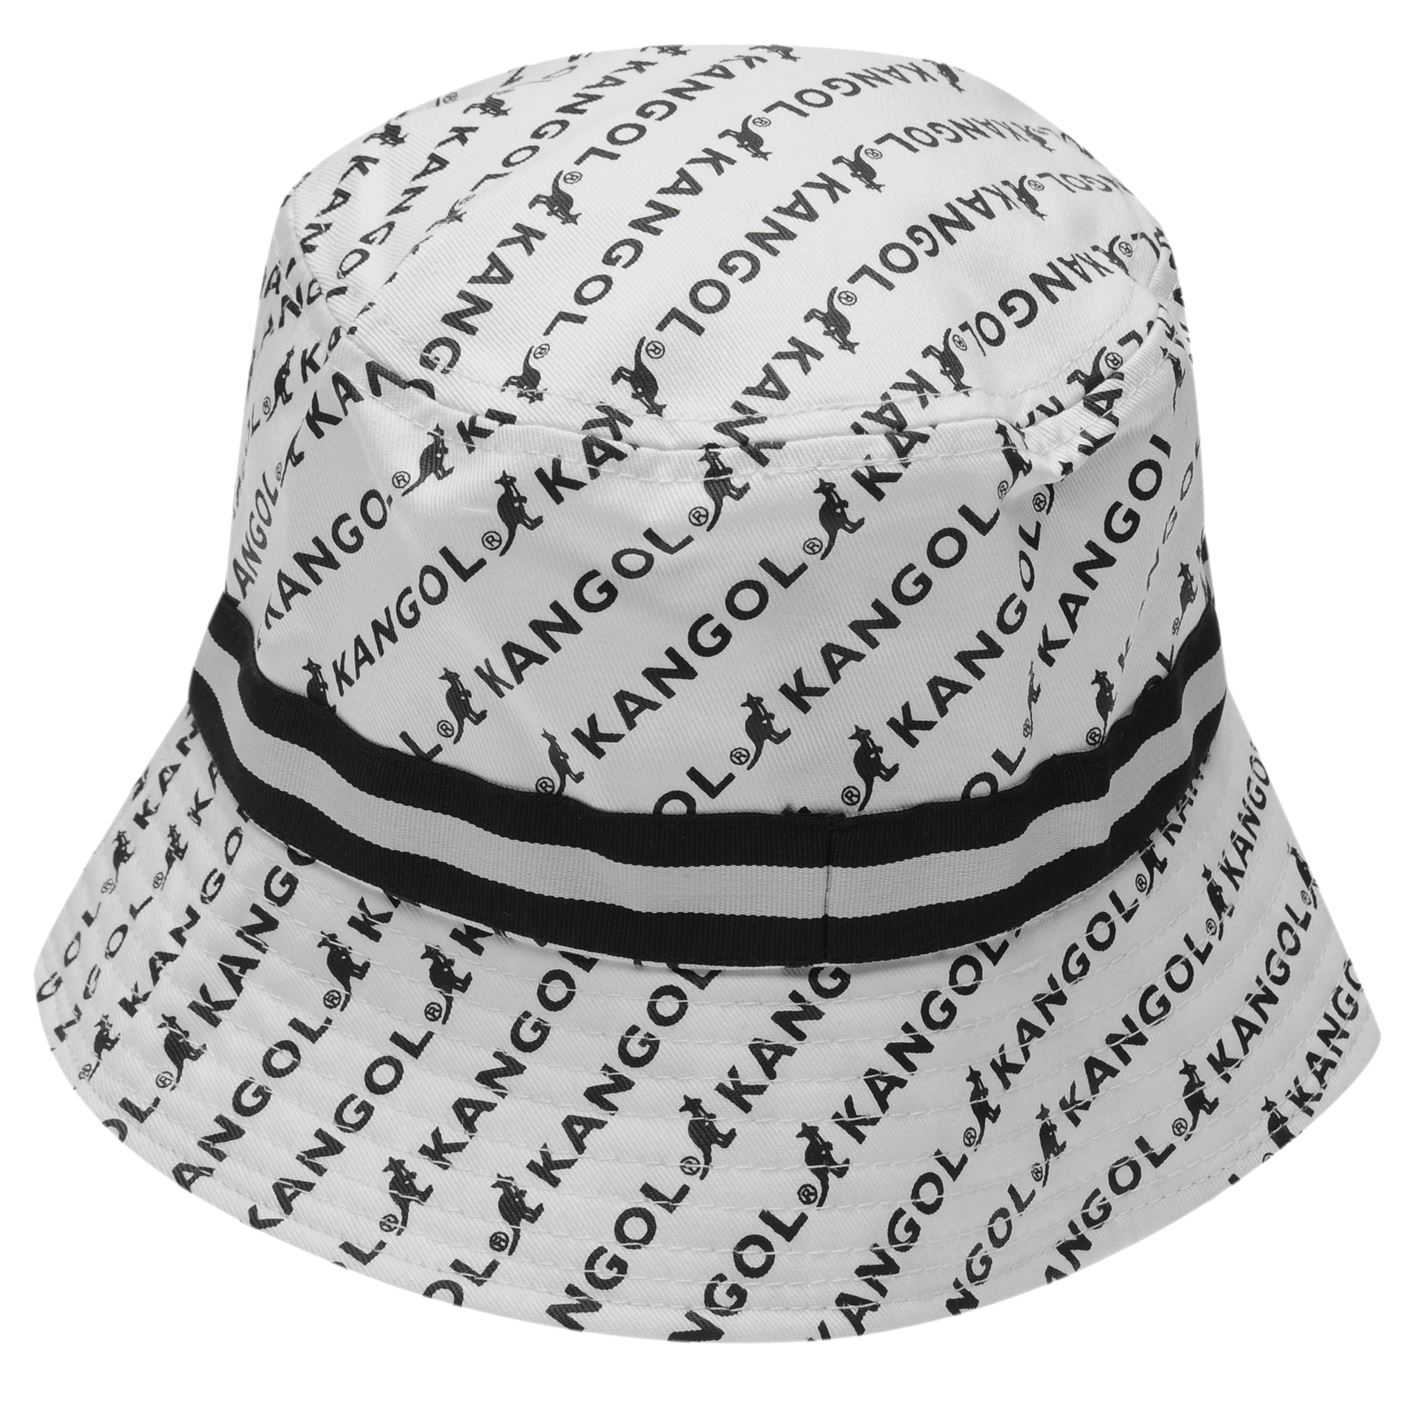 6dcc8d6334b Mens Kangol Pattern Bucket Hat Cotton New